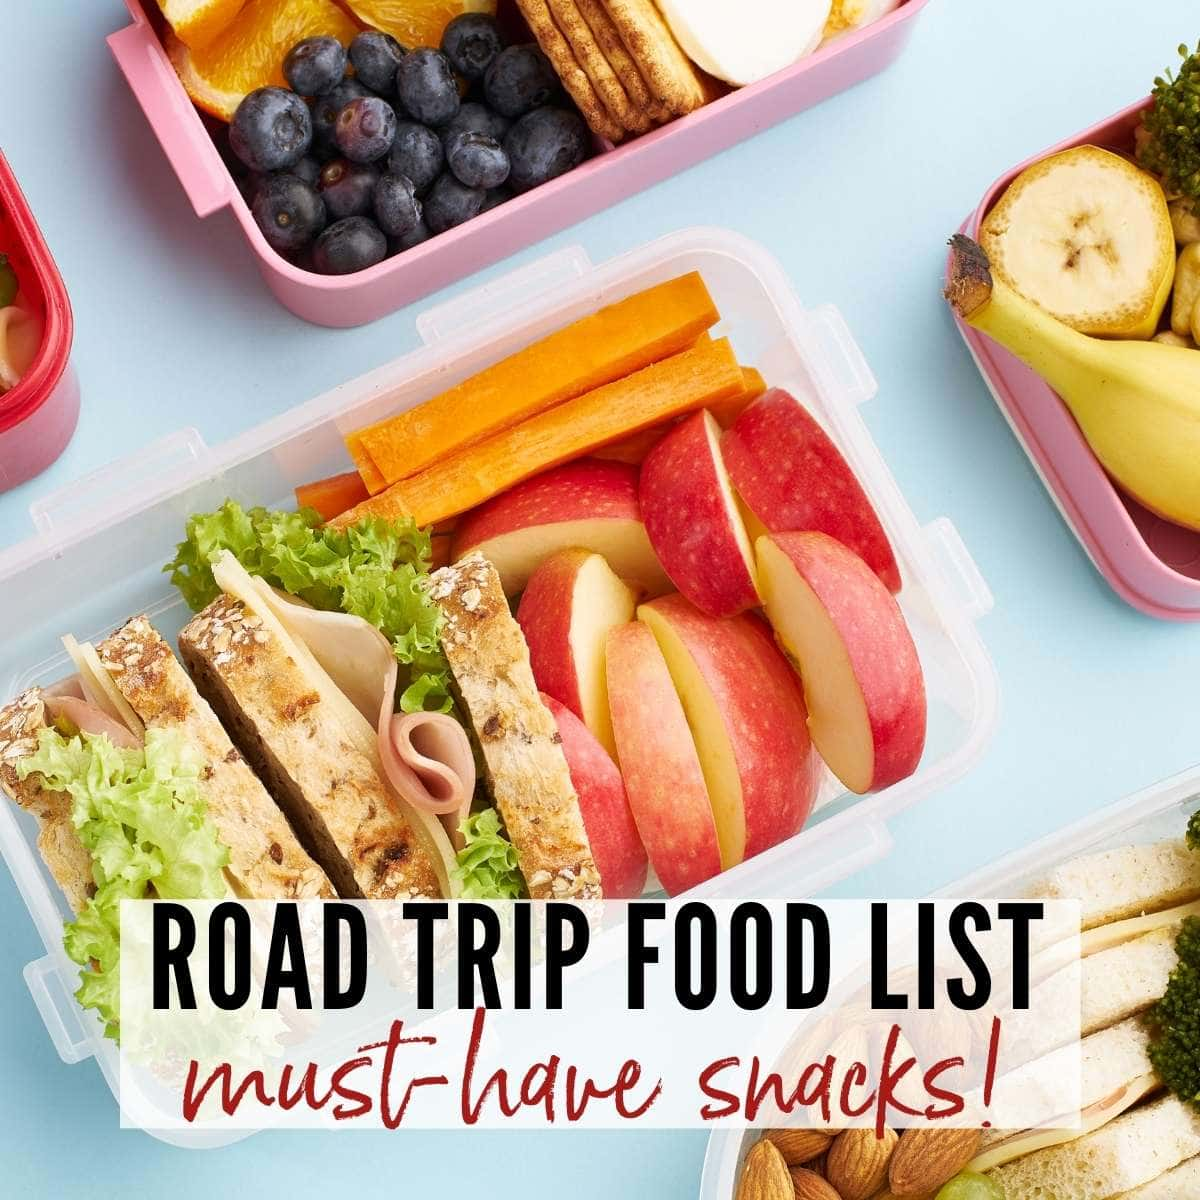 plastic containers filled with fruits, vegetables, nuts, crackers and sandwiches with Road Trip Food List graphic overlay